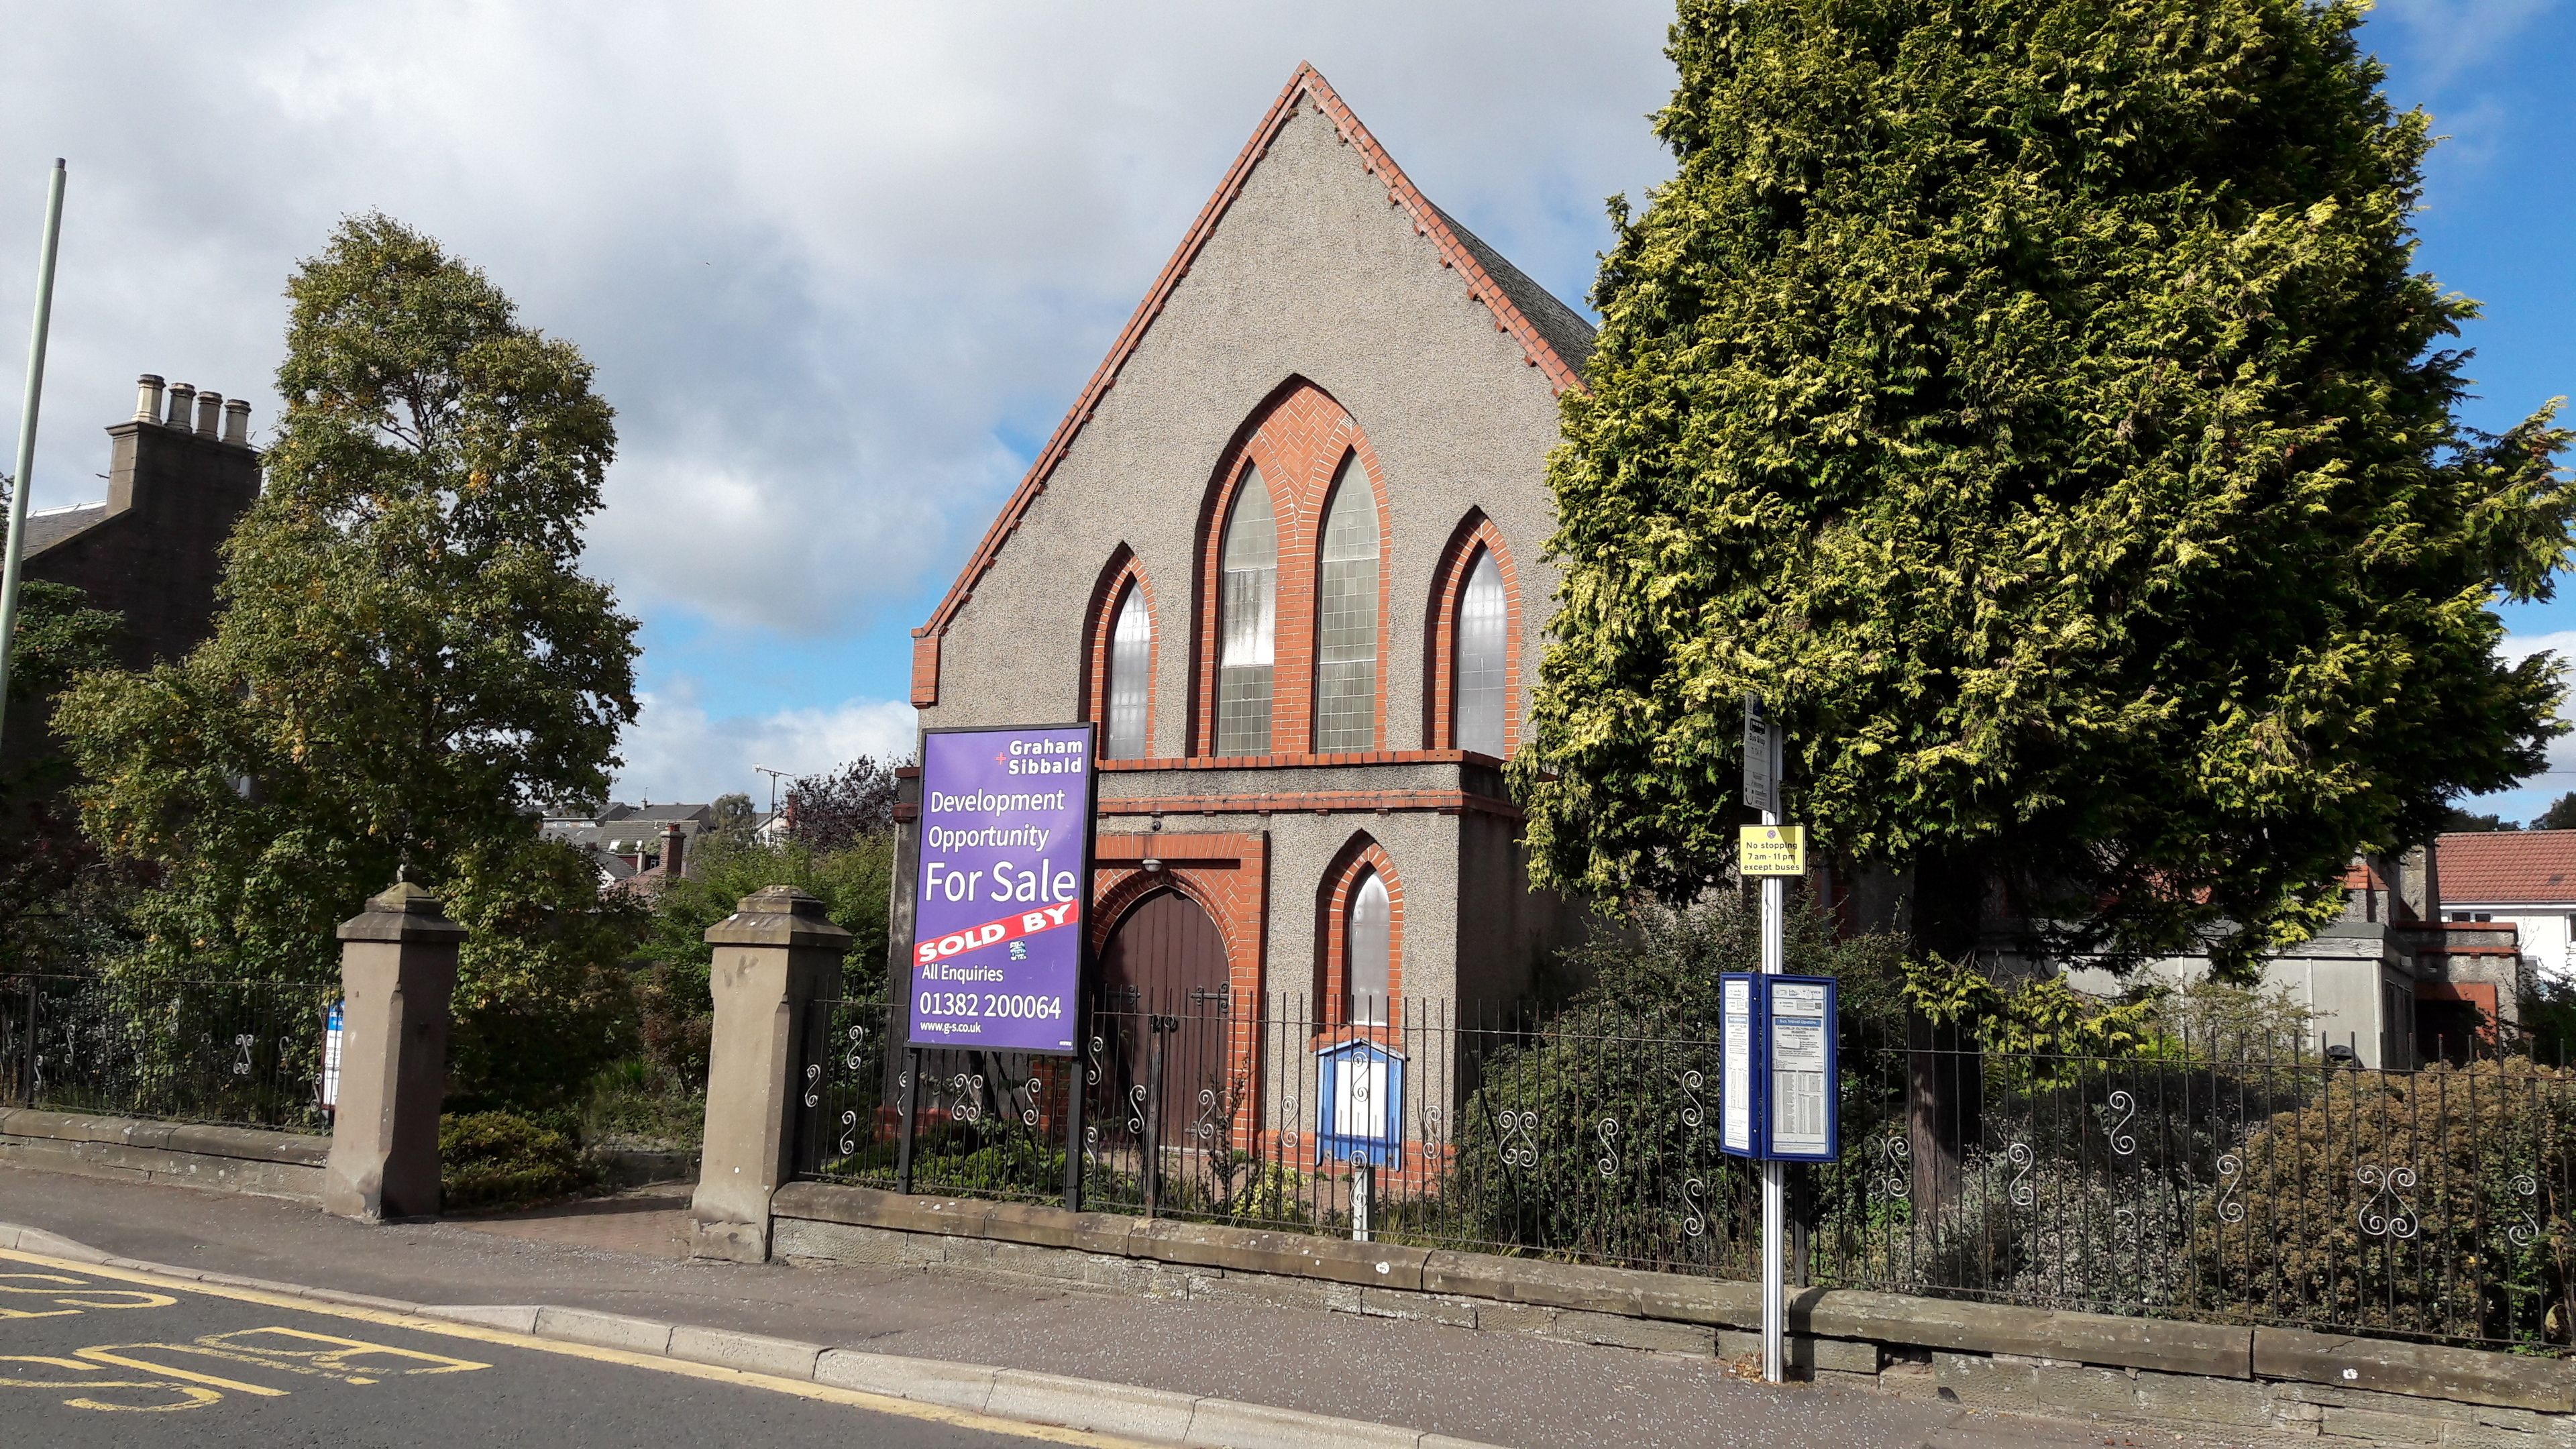 Six flats are to be built on the Panmure Church site